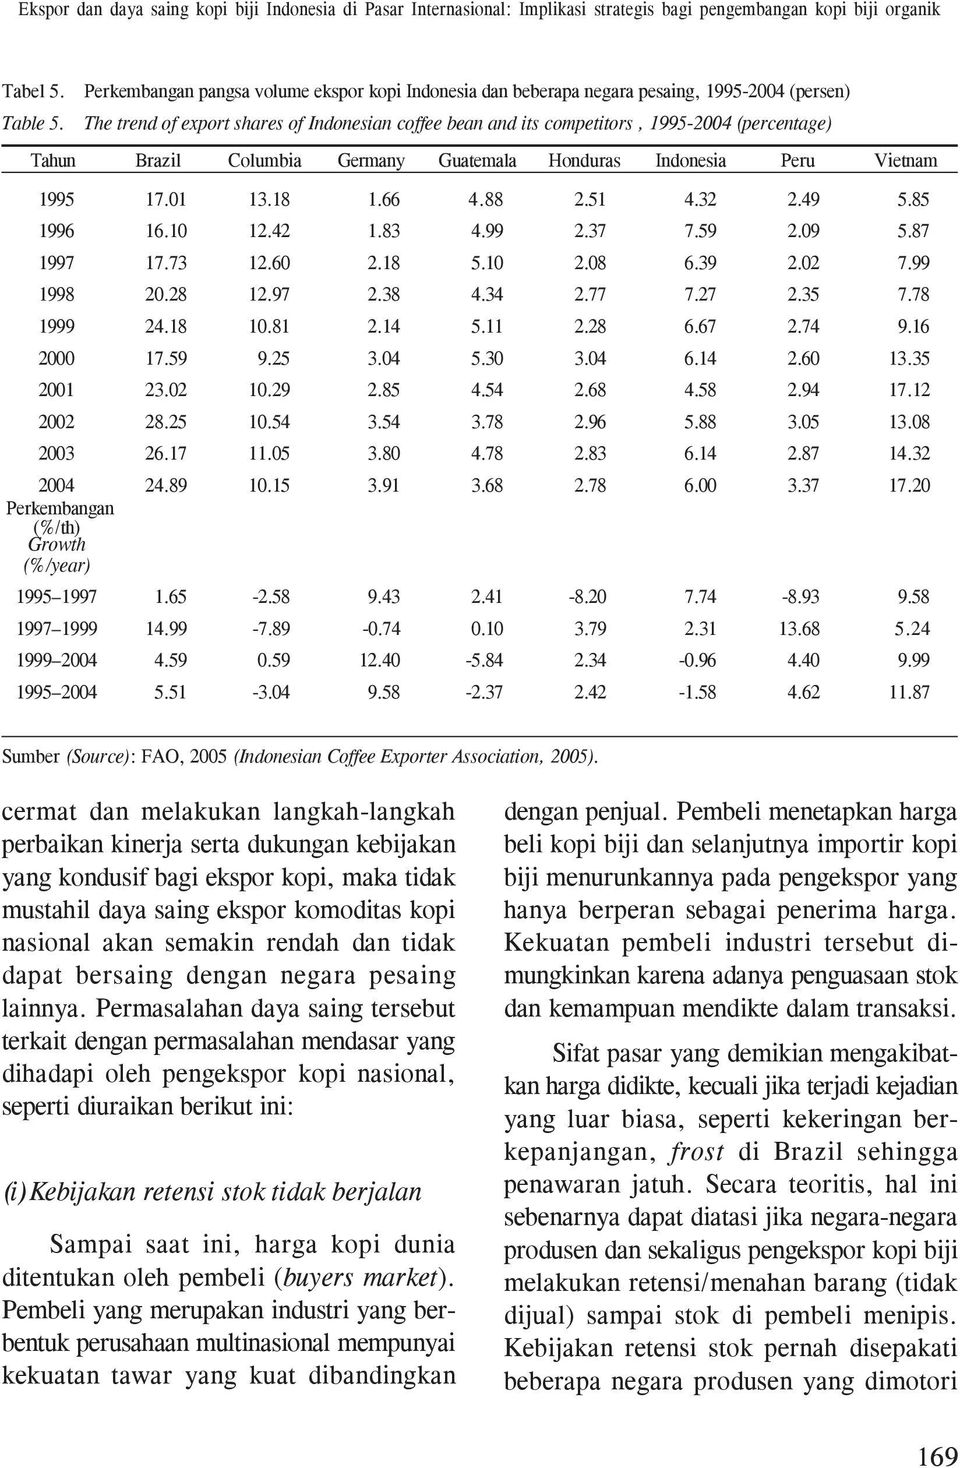 The trend of export shares of Indonesian coffee bean and its competitors, 1995-2004 (percentage) Tahun Brazil Columbia Germany Guatemala Honduras Indonesia Peru Vietnam 1995 17.01 13.18 1.66 4.88 2.